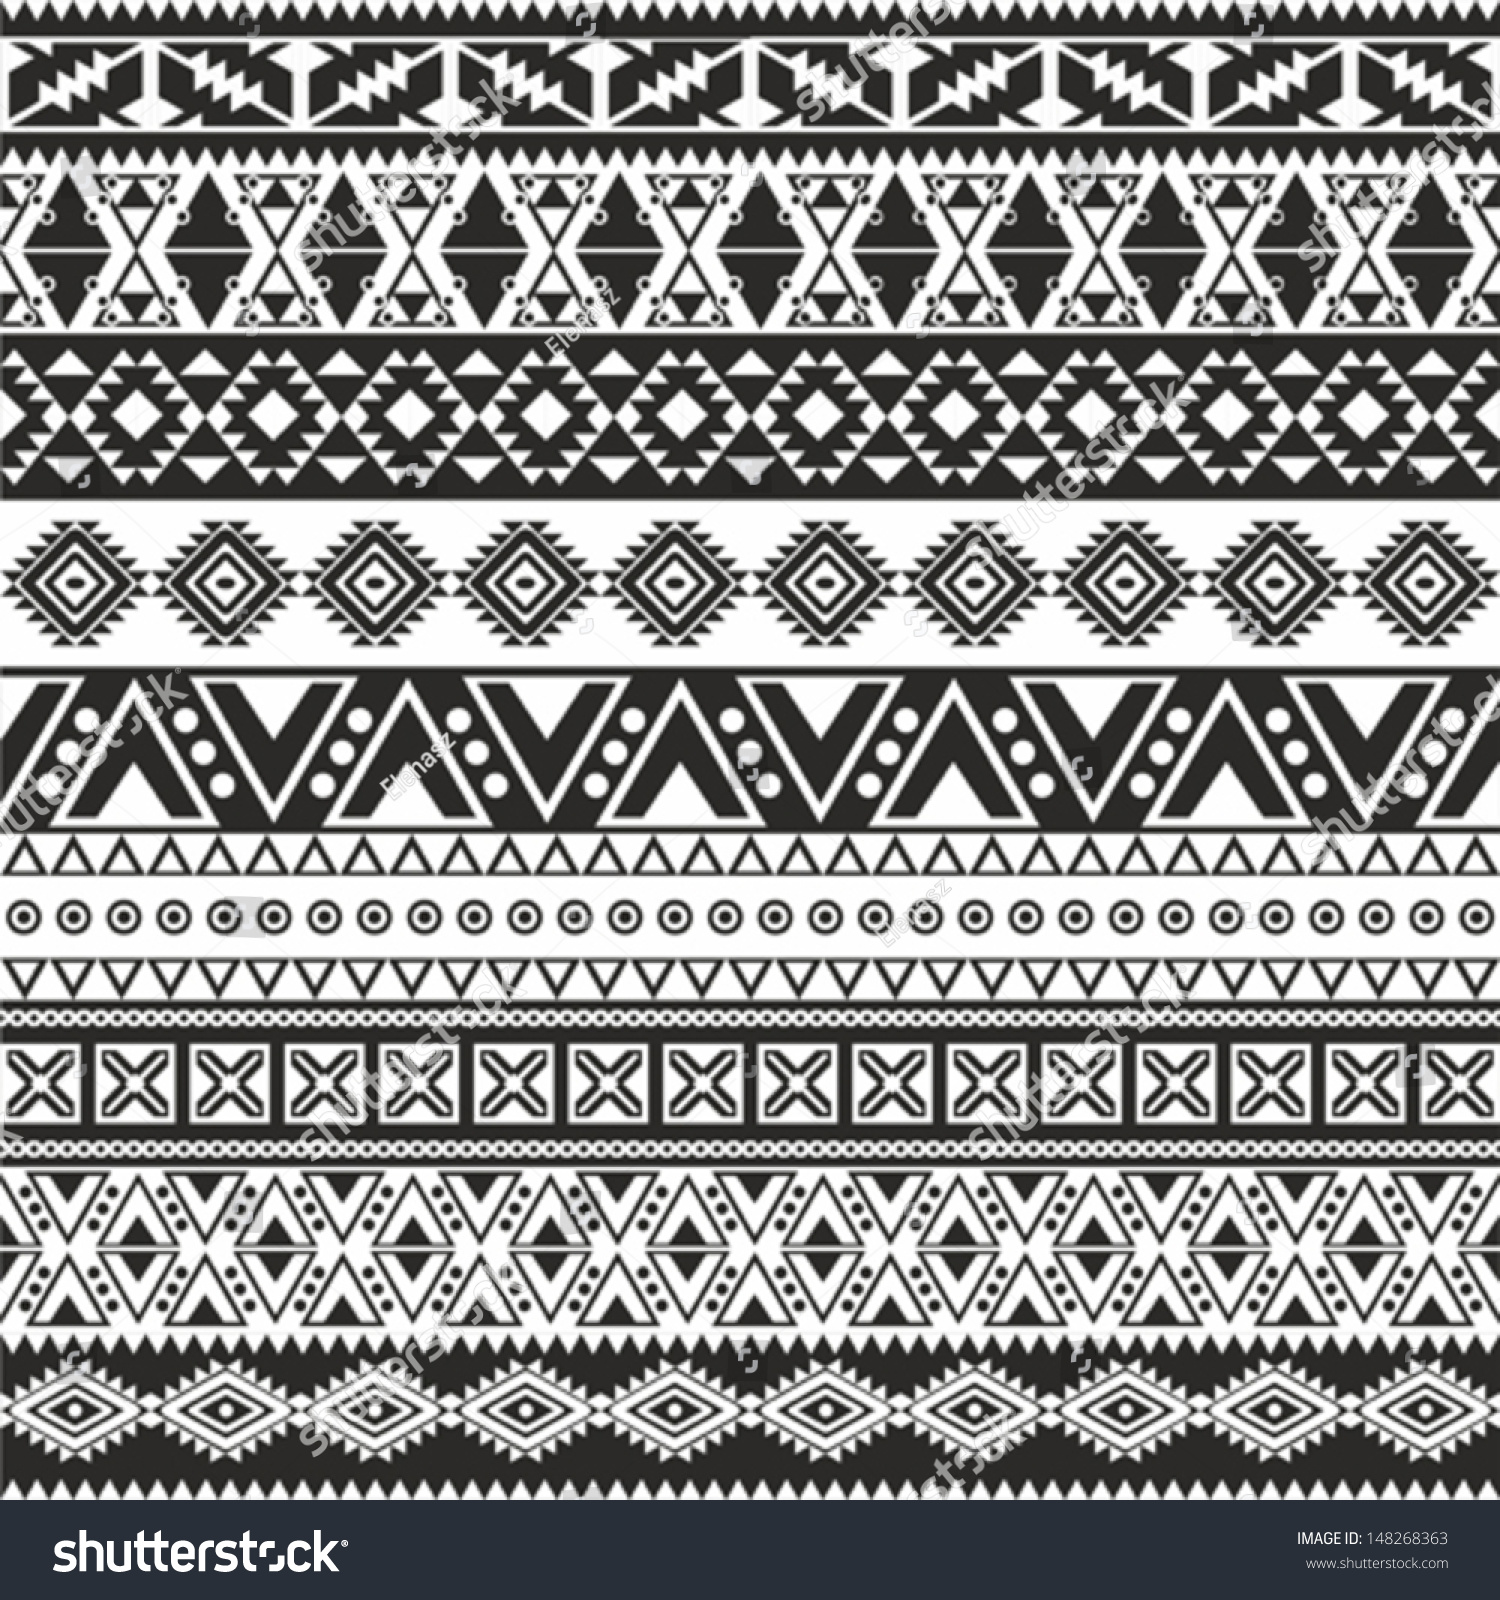 Background geometric mexican patterns seamless vector zigzag maya - Tribal Seamless Pattern Aztec Black And White Background